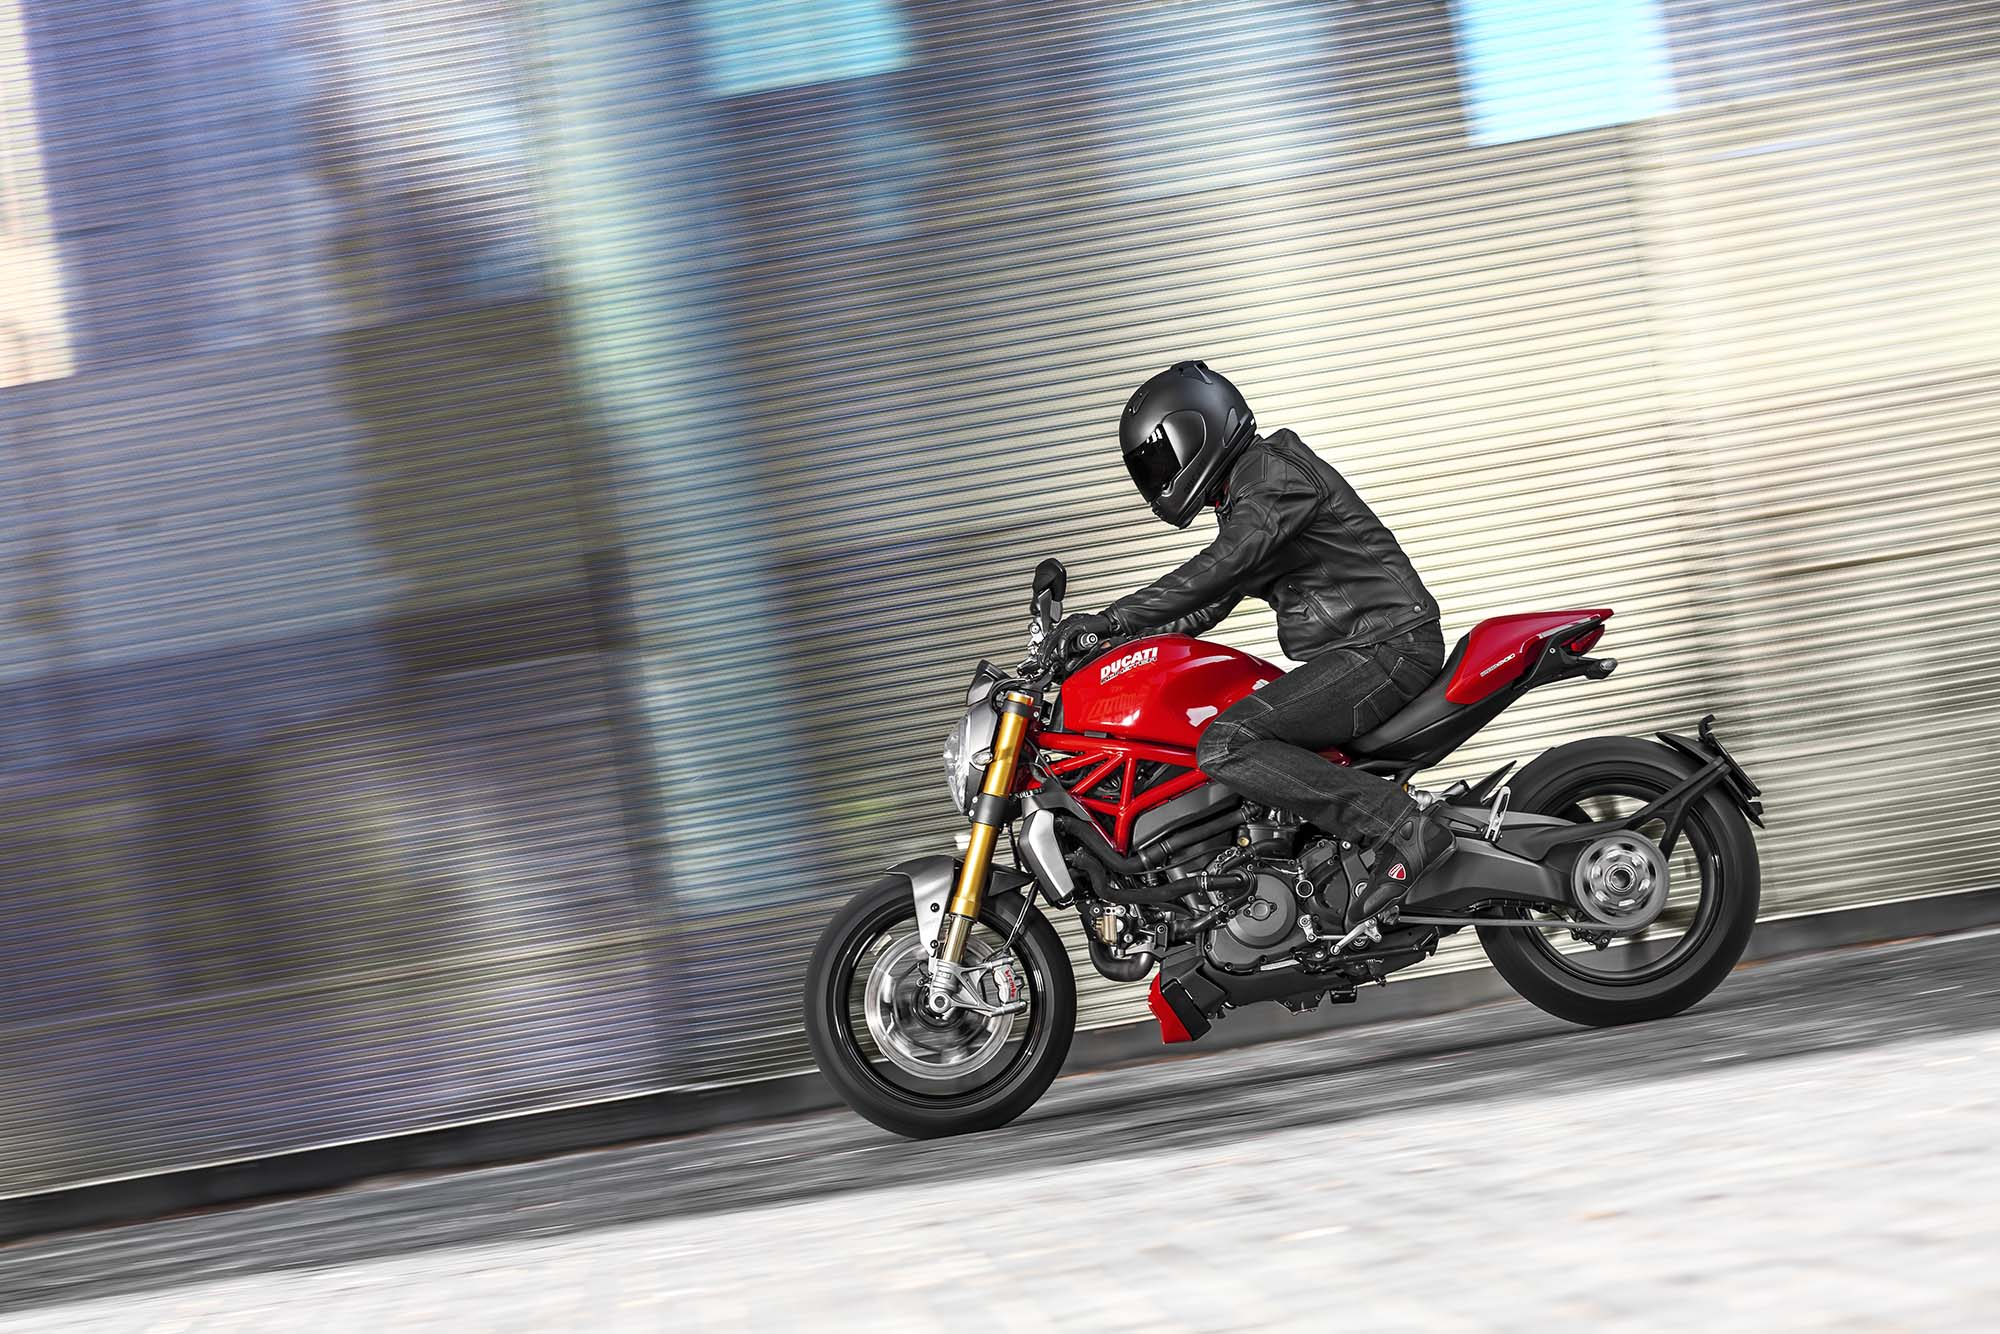 2014 Ducati Monster 1200 S Moar Monster Asphalt Amp Rubber